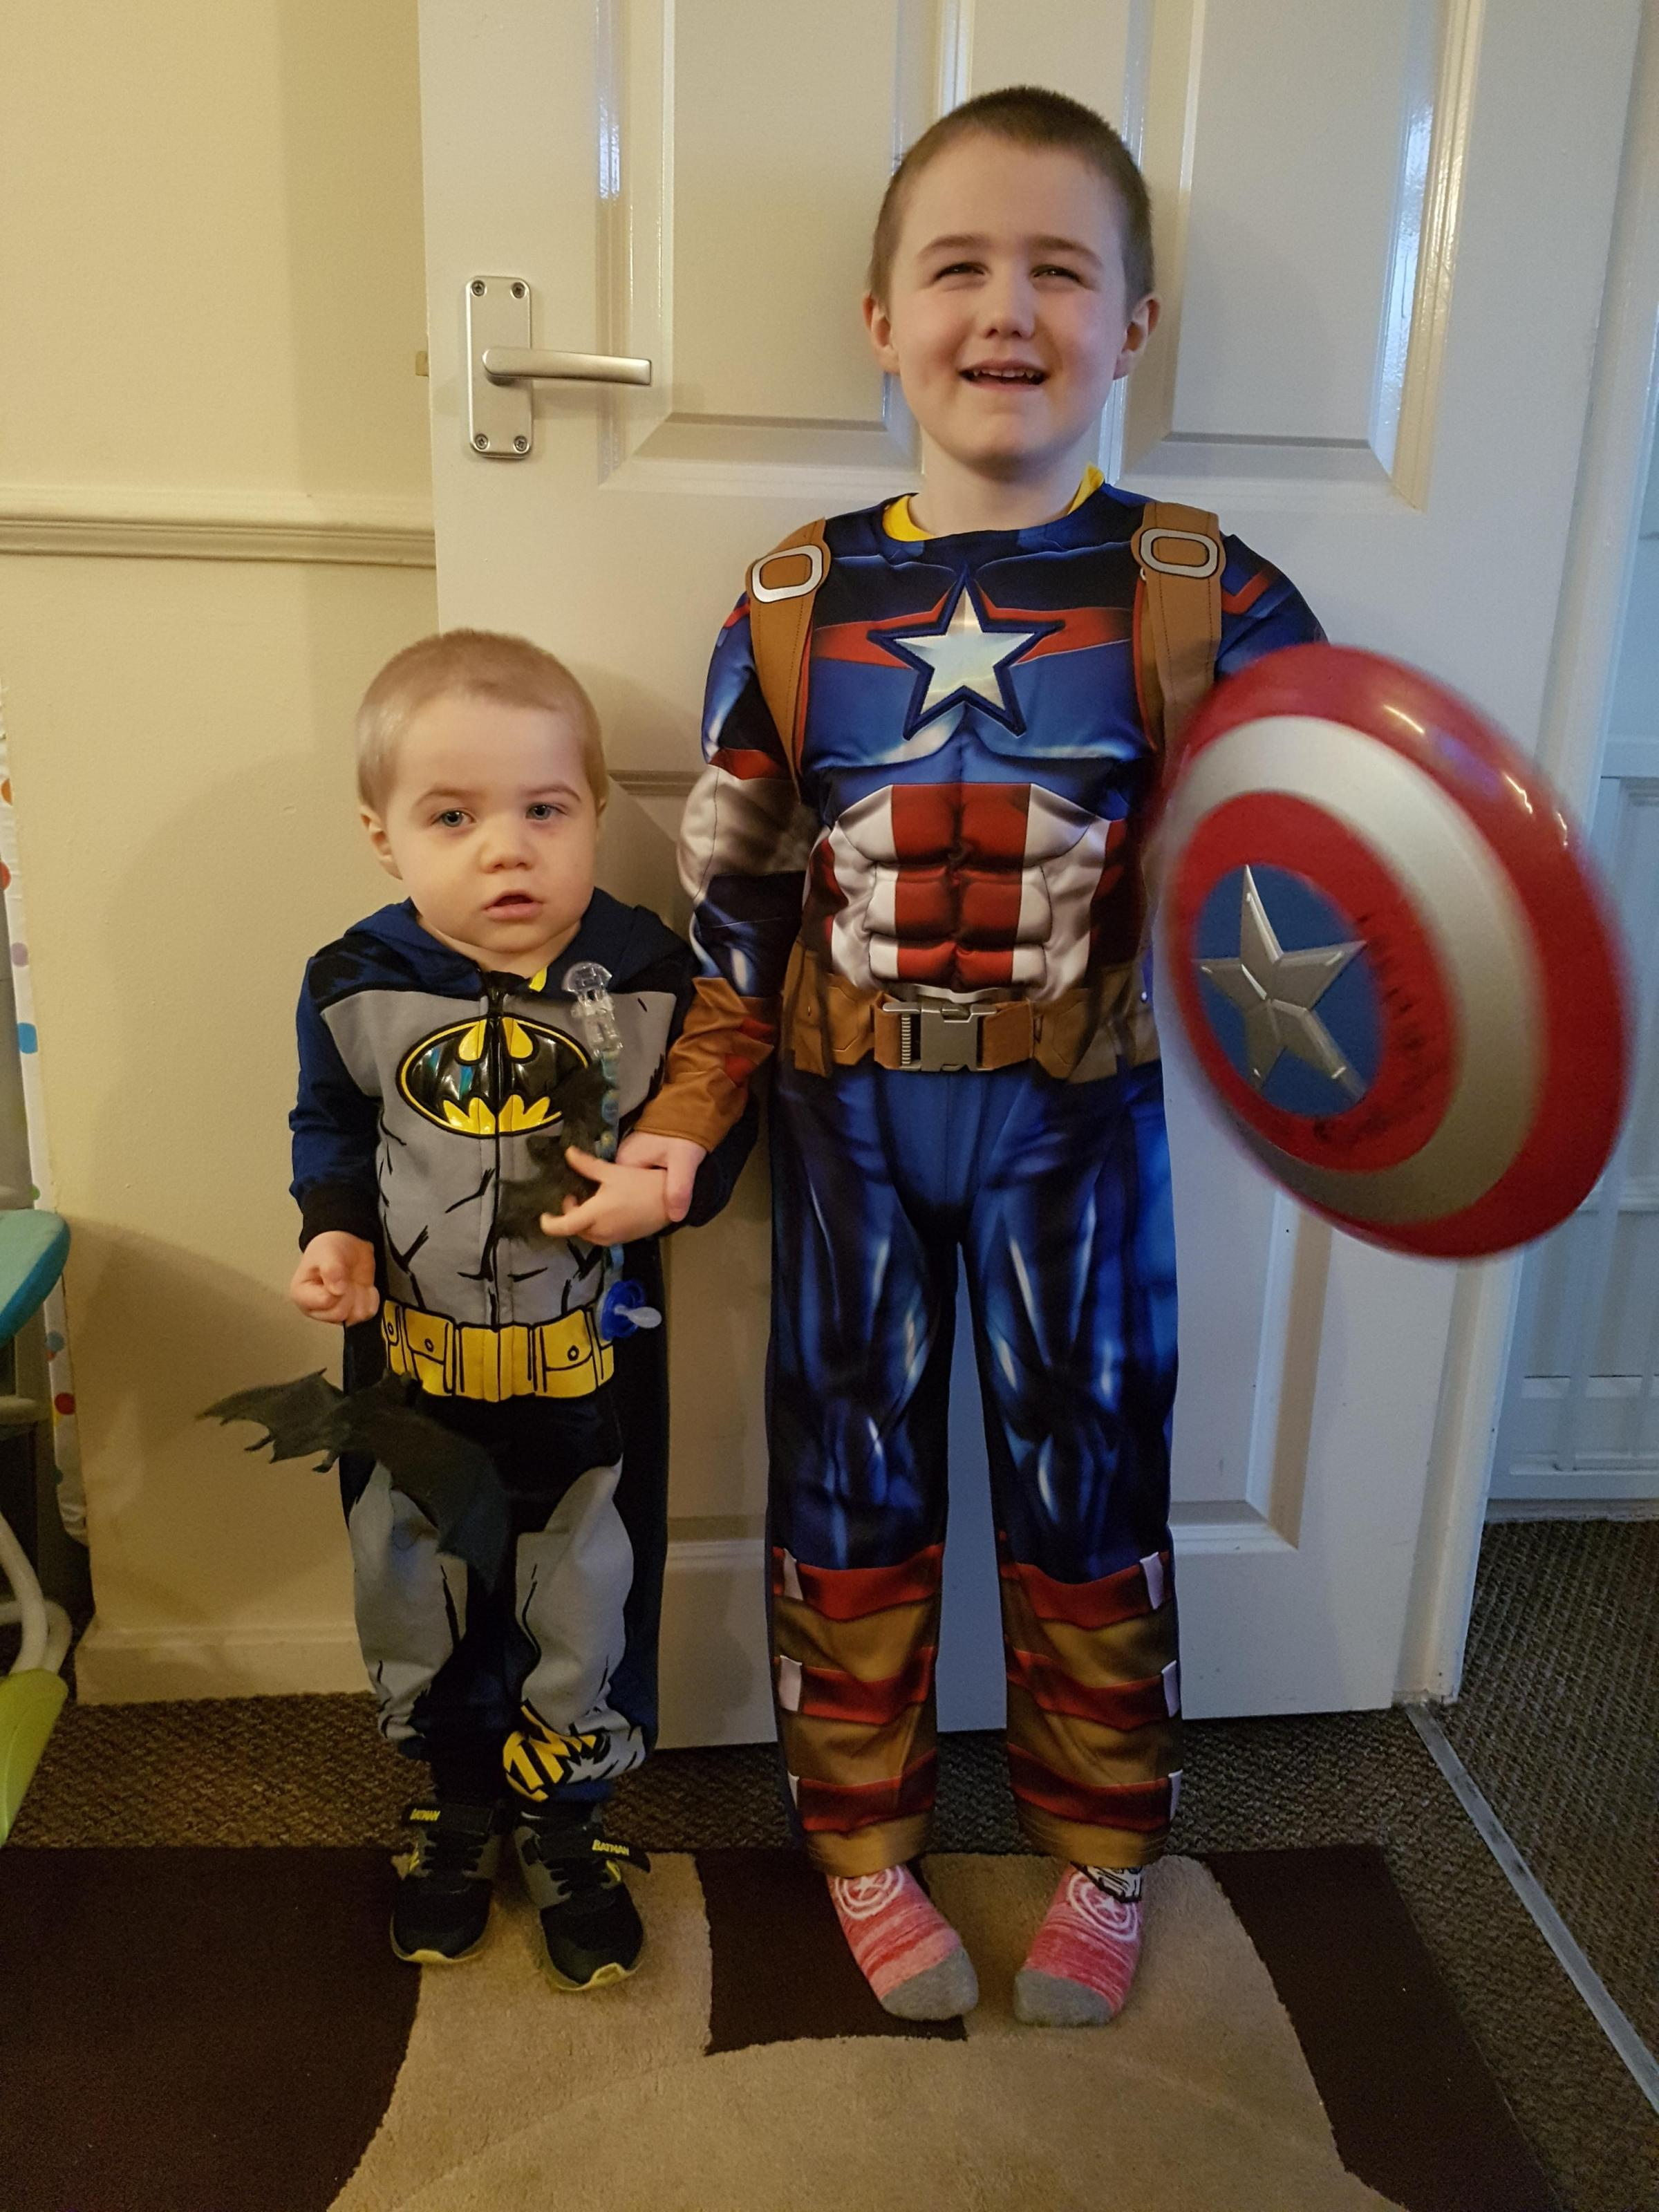 Droitwich Advertiser: My 2 sons Lee Hartill  age 5 dressed as Captain America and Ben Hartill age 2 dressed as Batman